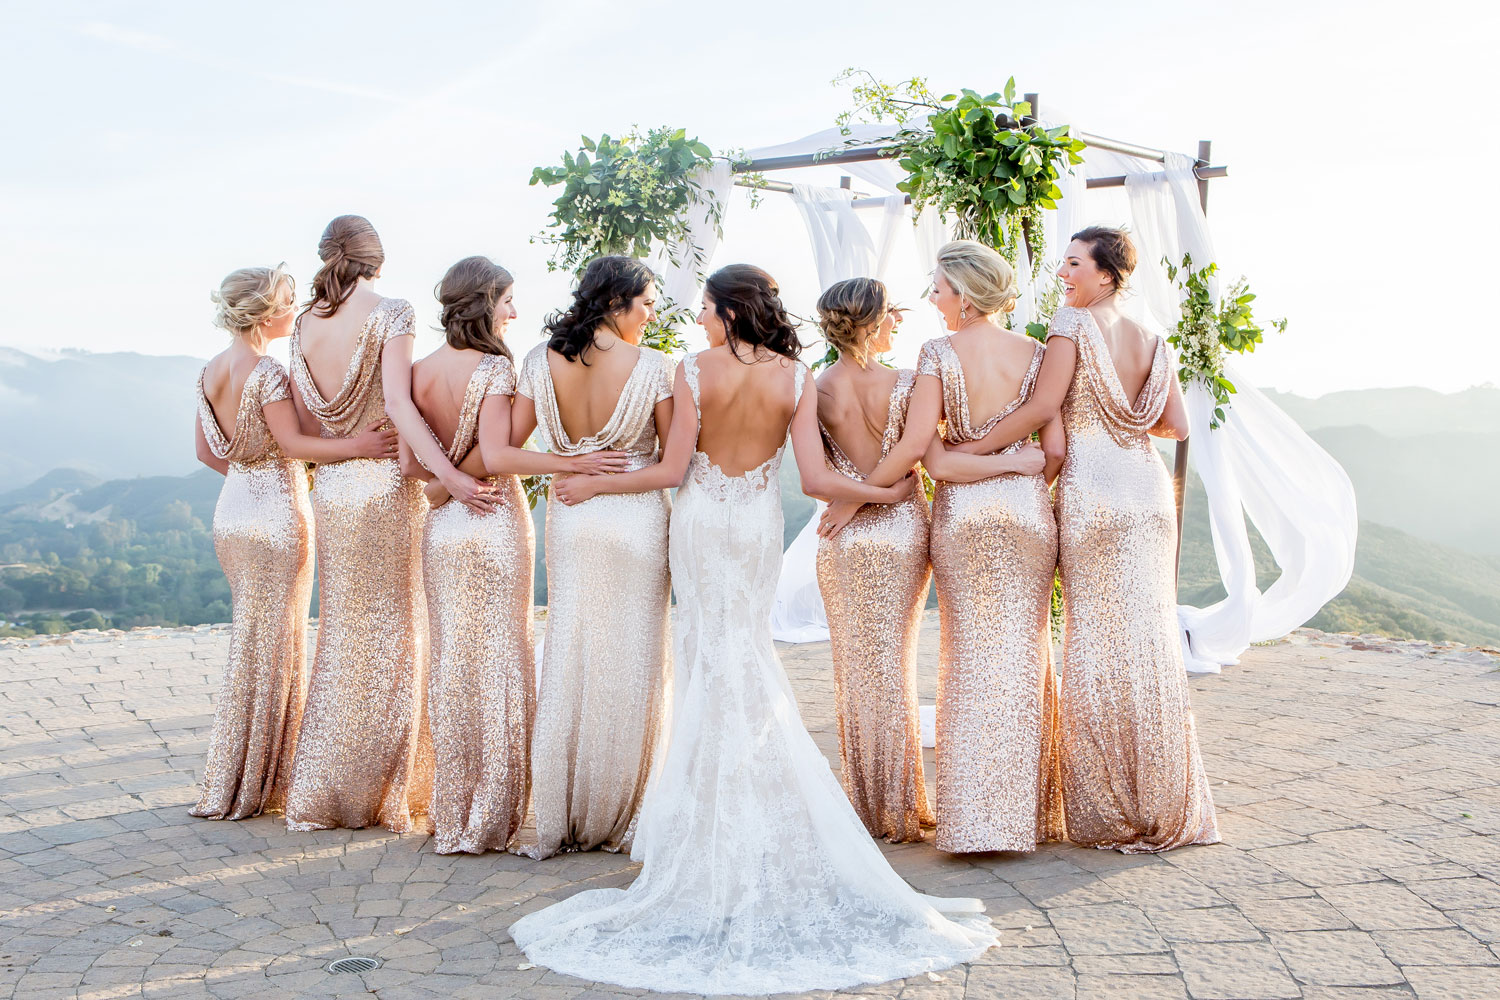 How to Choose Your Wedding Party How to Choose Your Wedding Party new picture